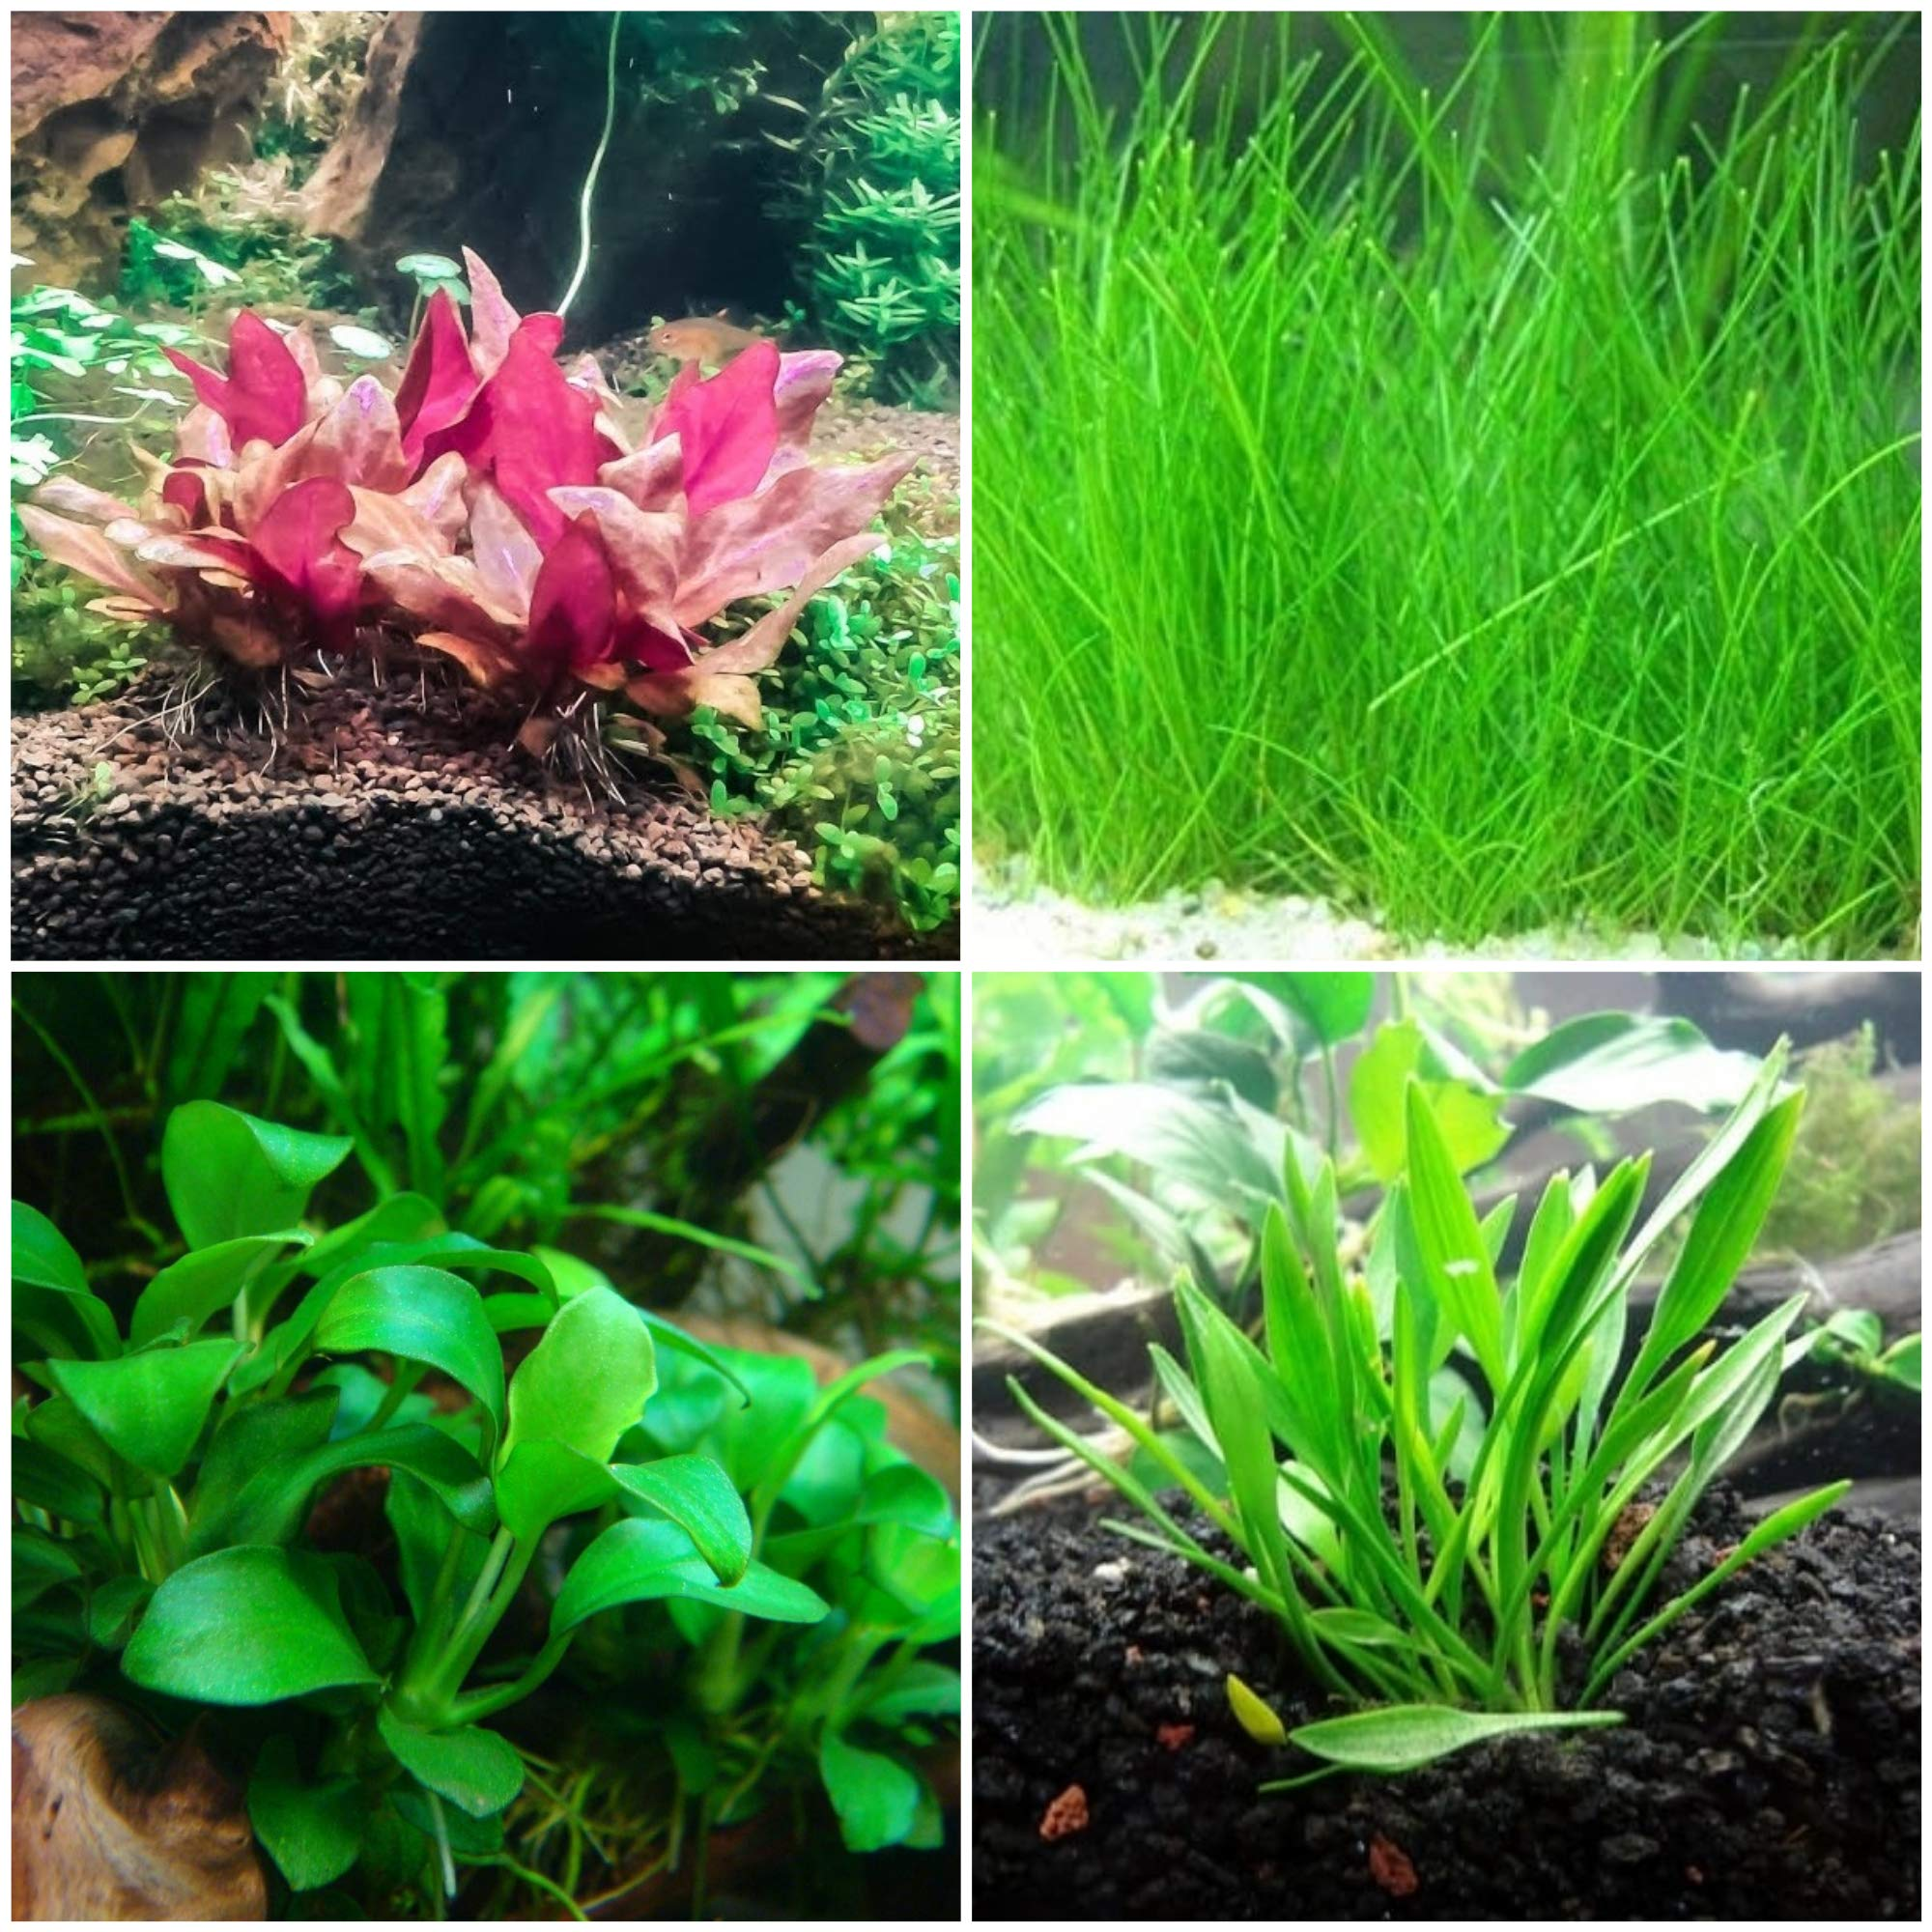 Tissue Culture Cup Bundle | Foreground Aquarium Plants - Anubias, Crypt Parva, Alternanthera Reineckii, Dwarf Hairgrass - Snail and Parasite Free Guaranteed by AquaLeaf Aquatics